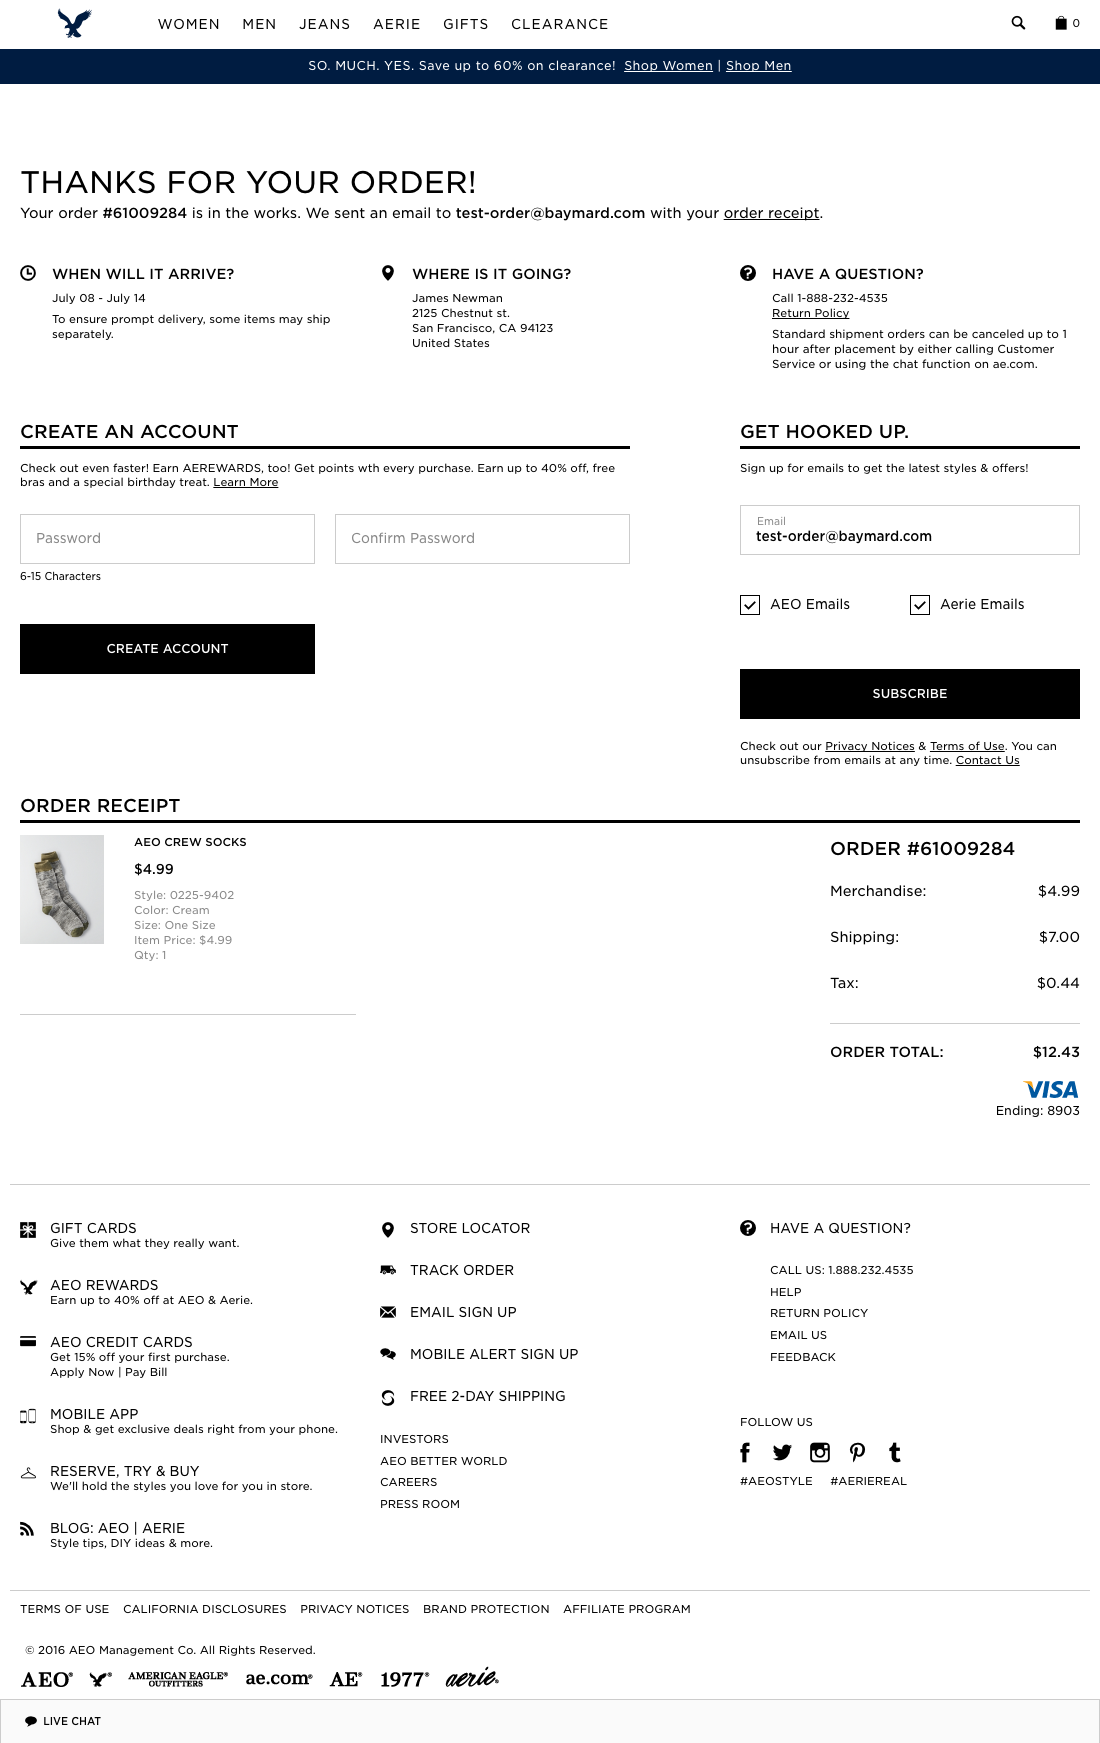 American Eagle Outfitters' Checkout Step 3: Receipt - Usability Benchmark - E-Commerce Checkout - Baymard Institute